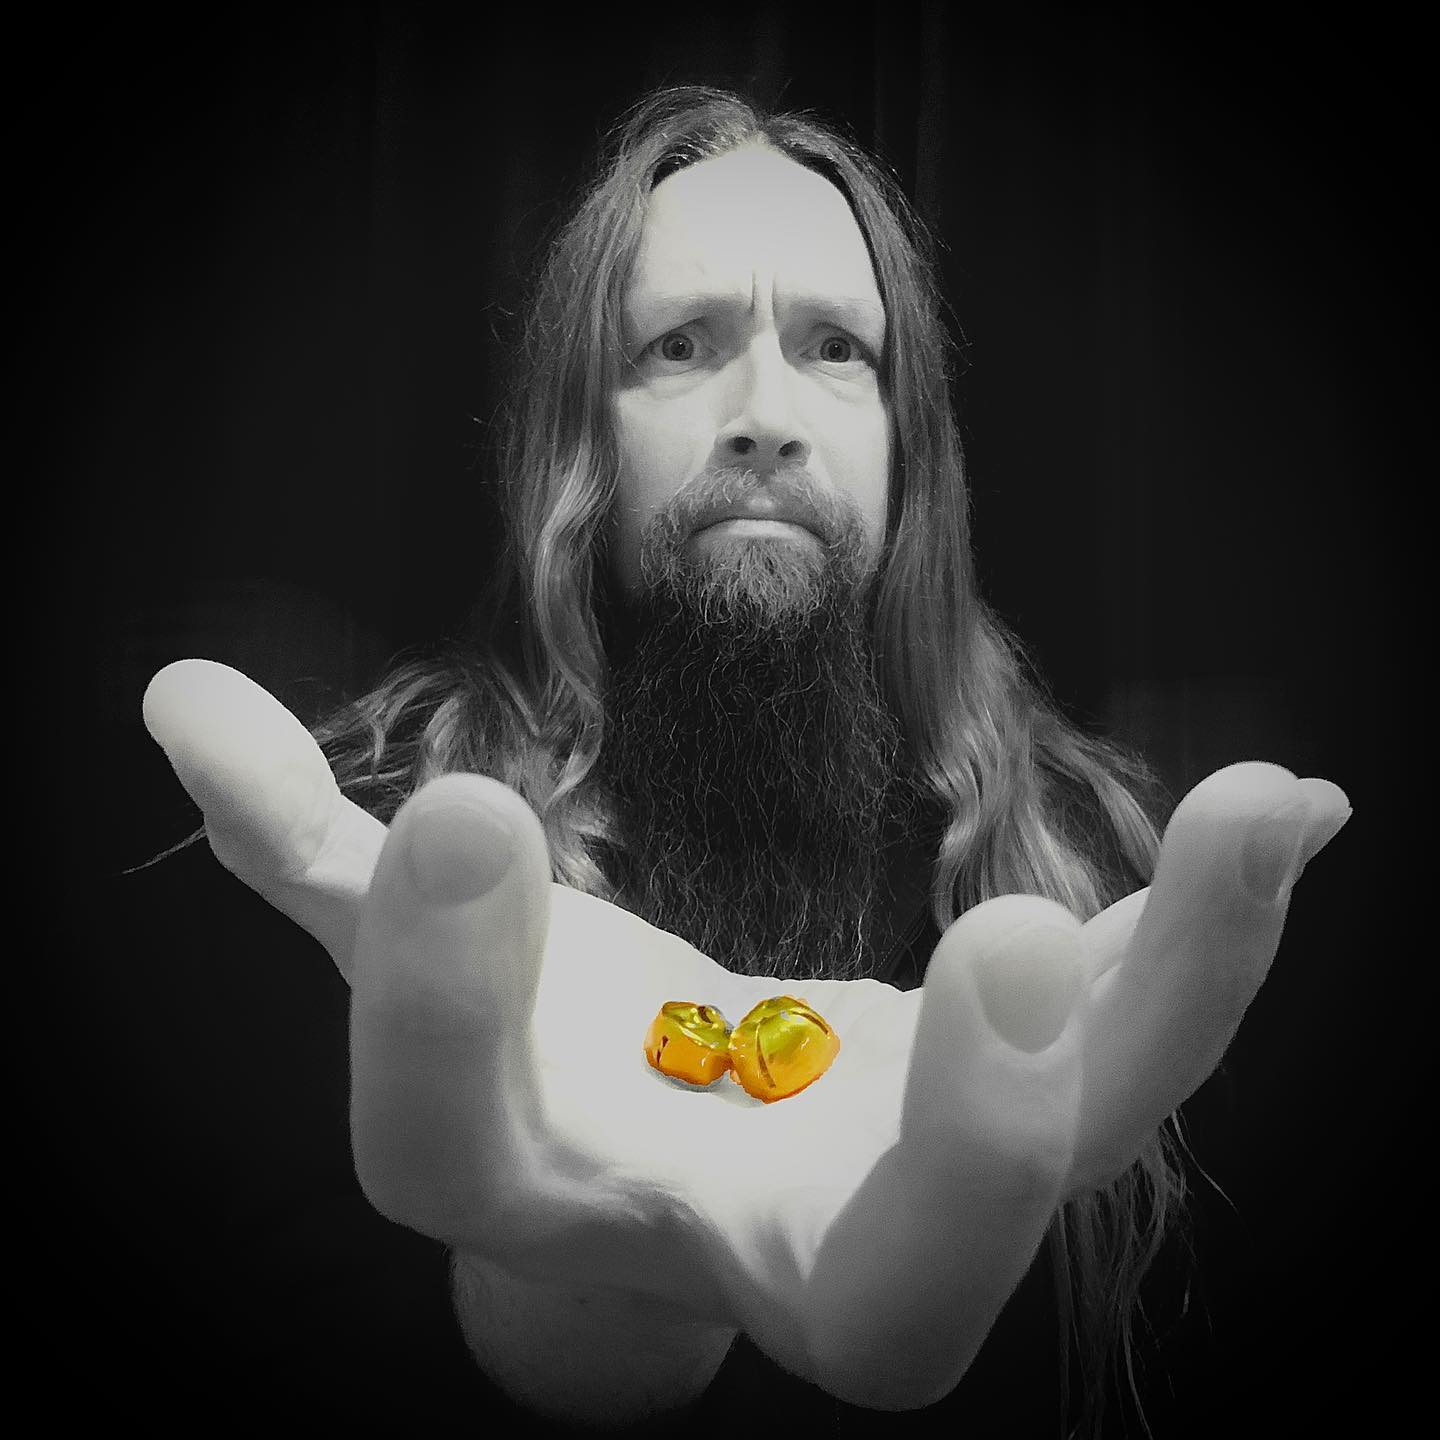 """Sami Hinkka's solo project ssSHhh released industrial metal homage to Christmas classic """"Jingle Bells."""""""